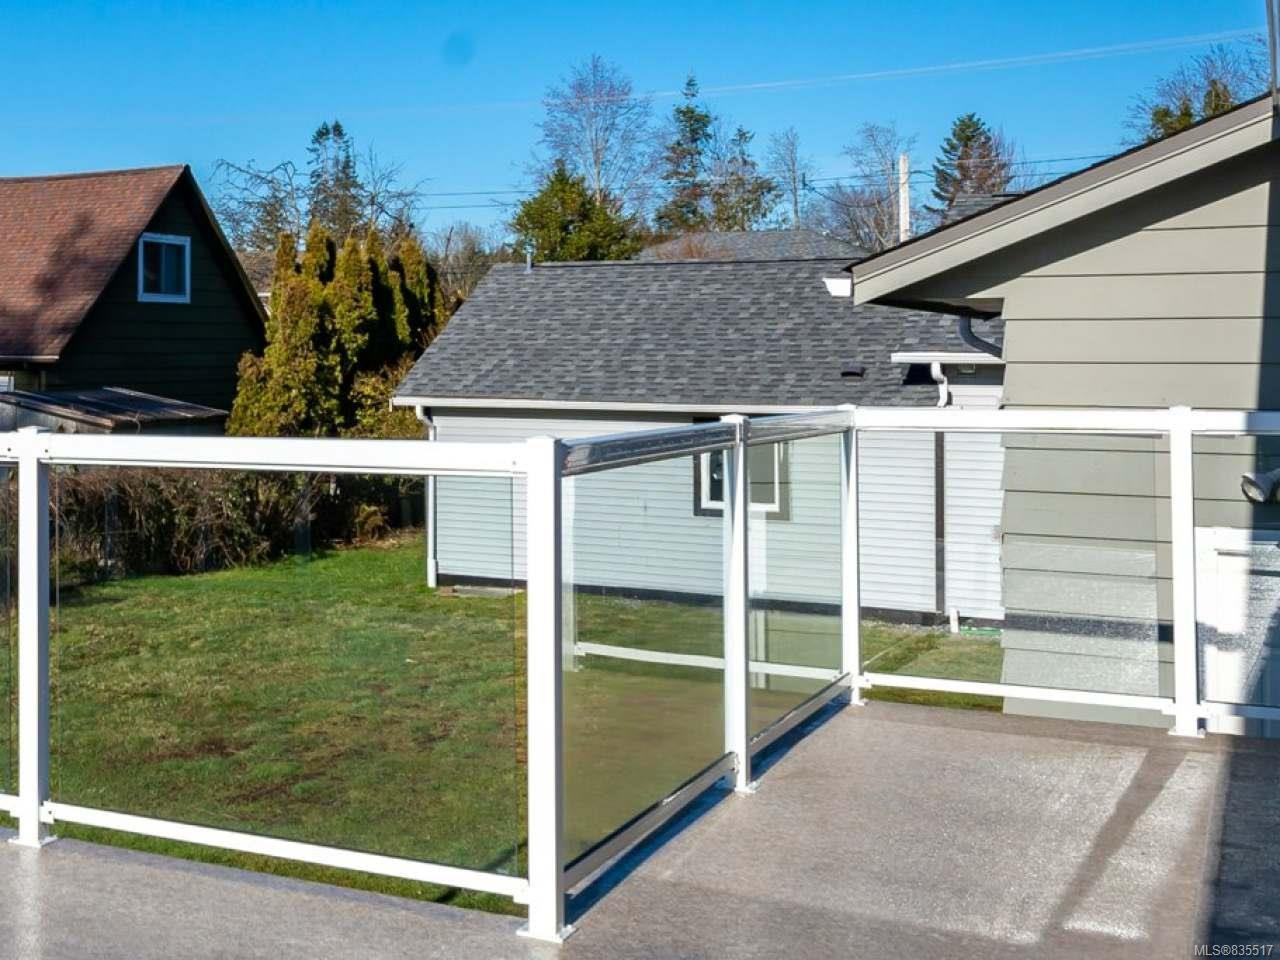 Photo 14: Photos: 109 Larwood Rd in CAMPBELL RIVER: CR Willow Point Single Family Detached for sale (Campbell River)  : MLS®# 835517